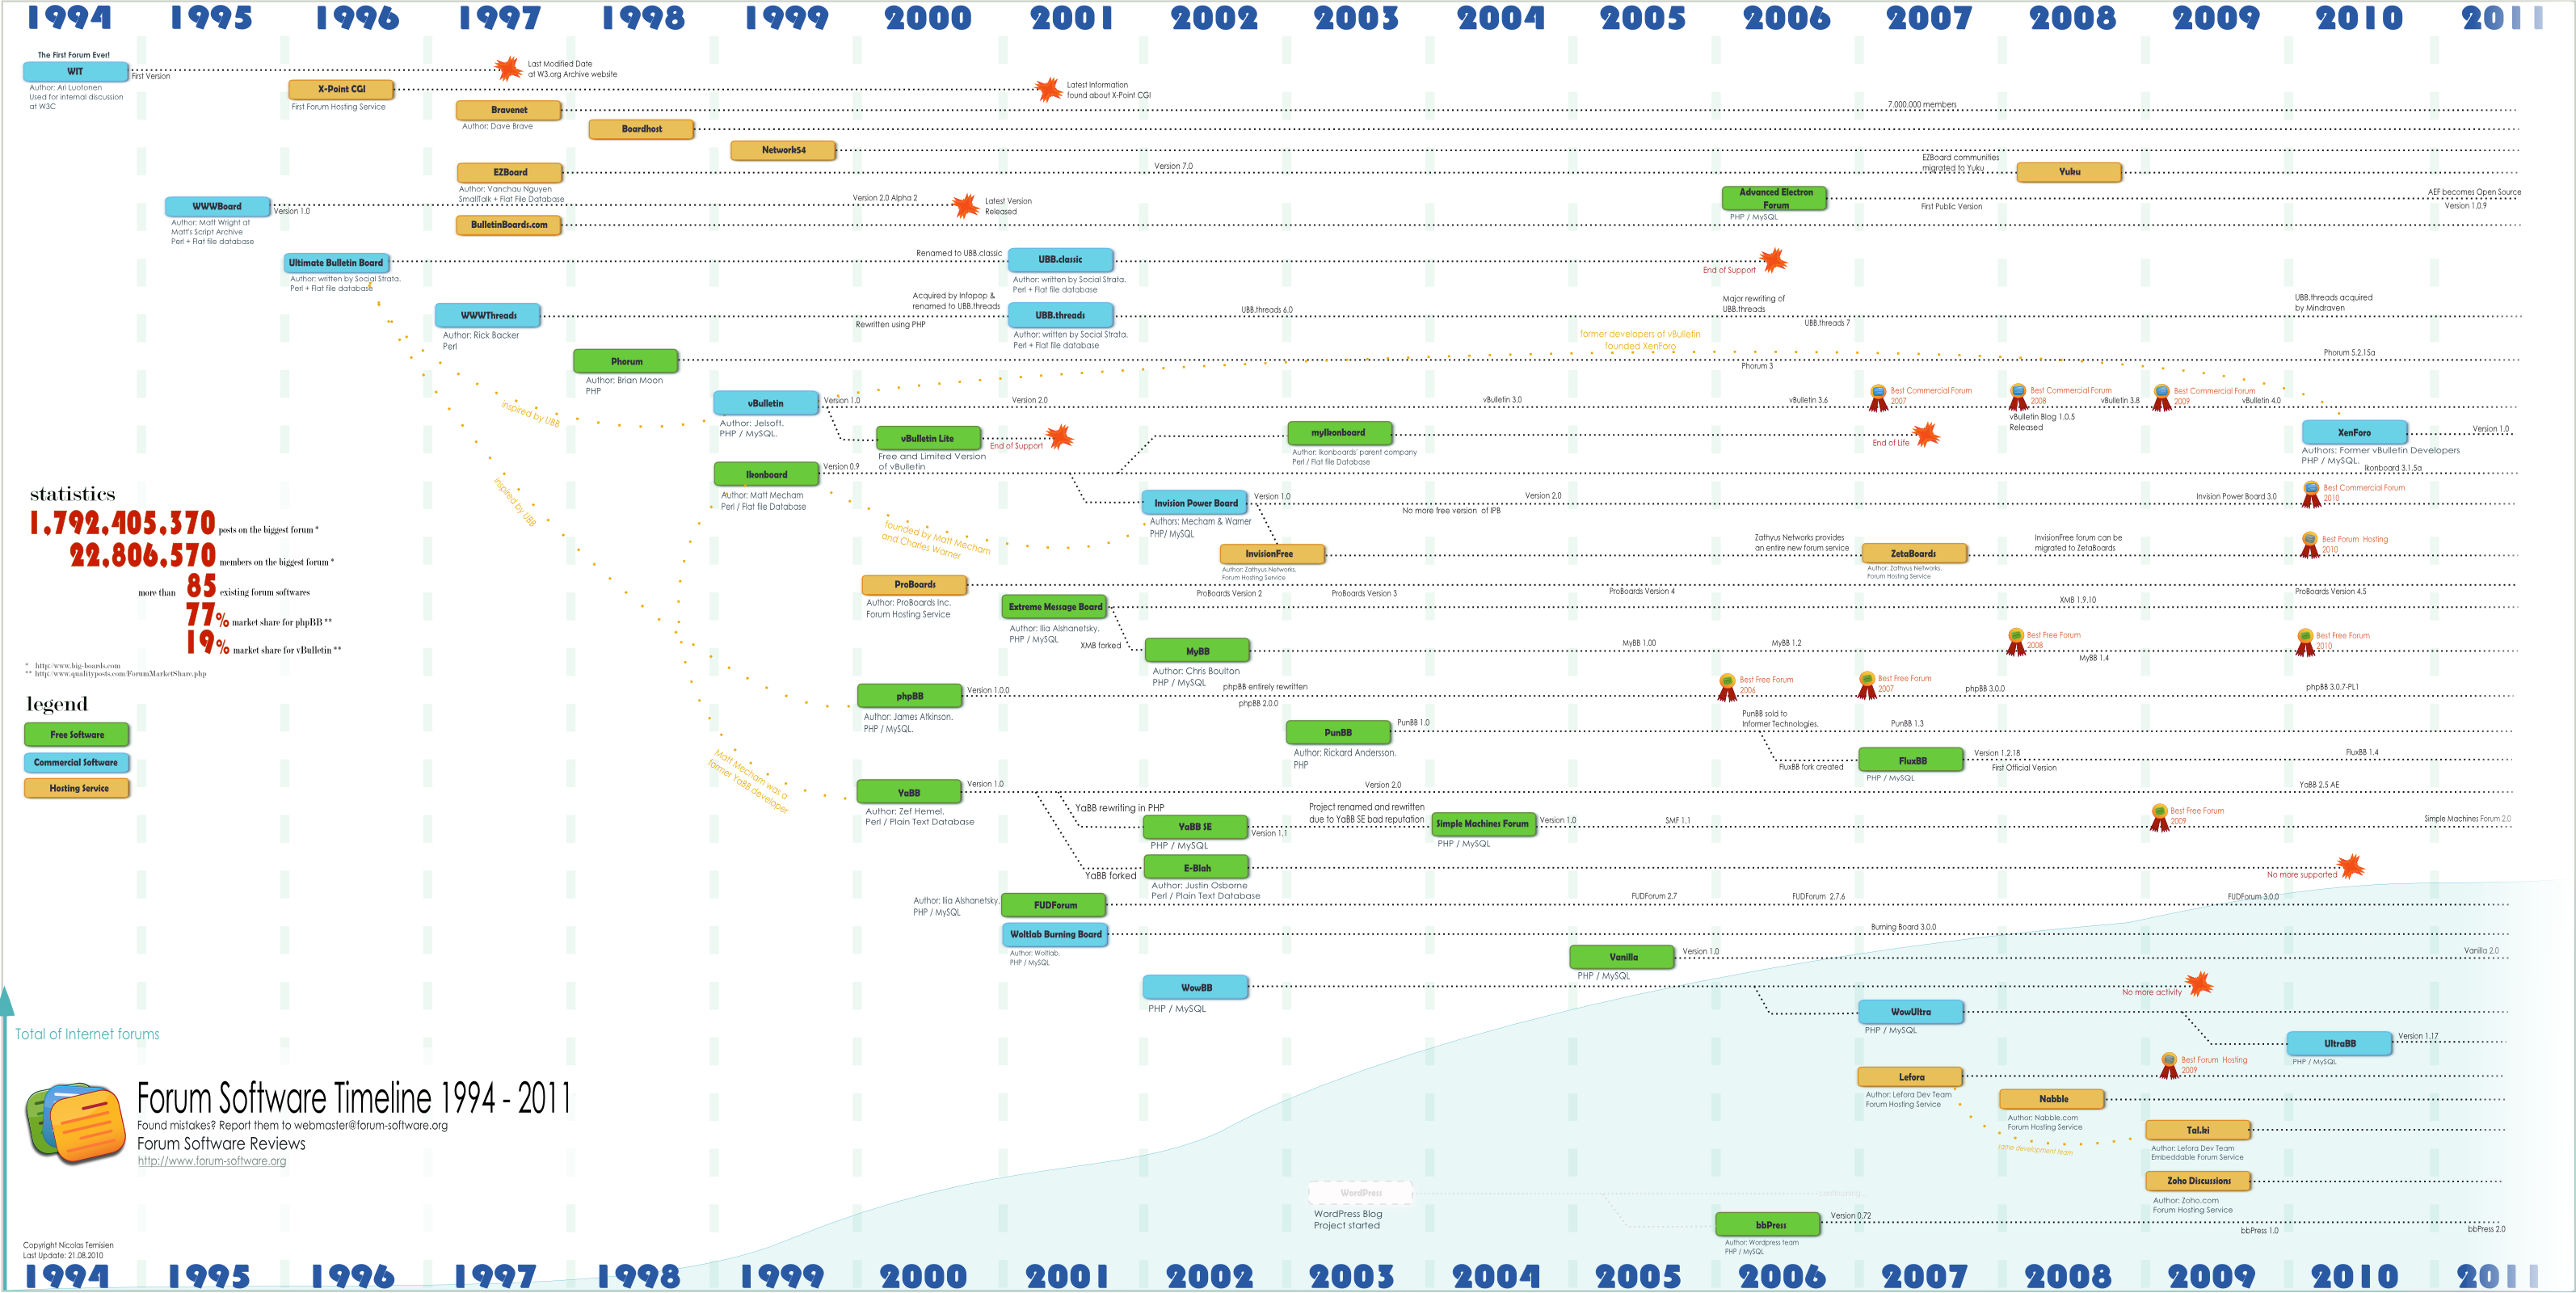 Forum Software Timeline 1994 - 2012 | Forum Software Reviews